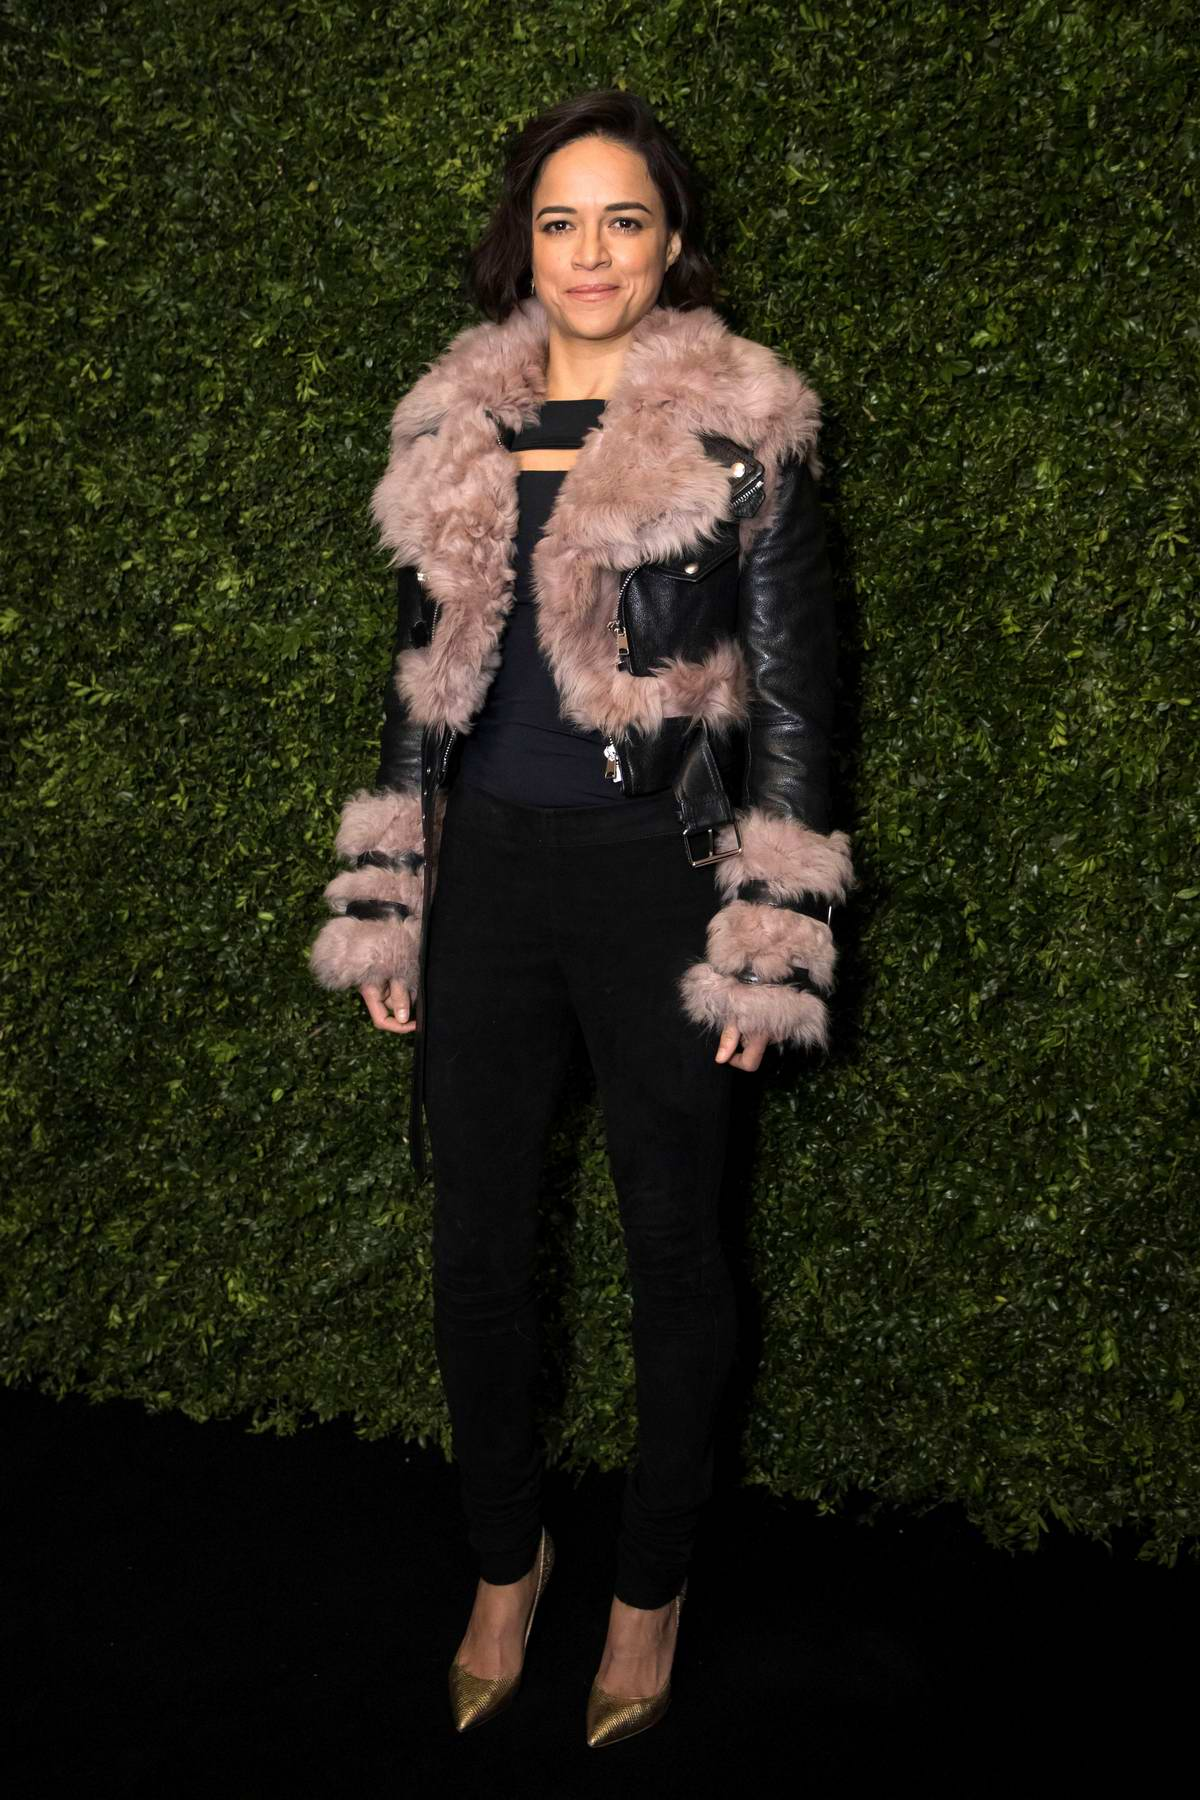 Michelle Rodriguez attends Charles Finch x Chanel pre-Bafta dinner in London, UK